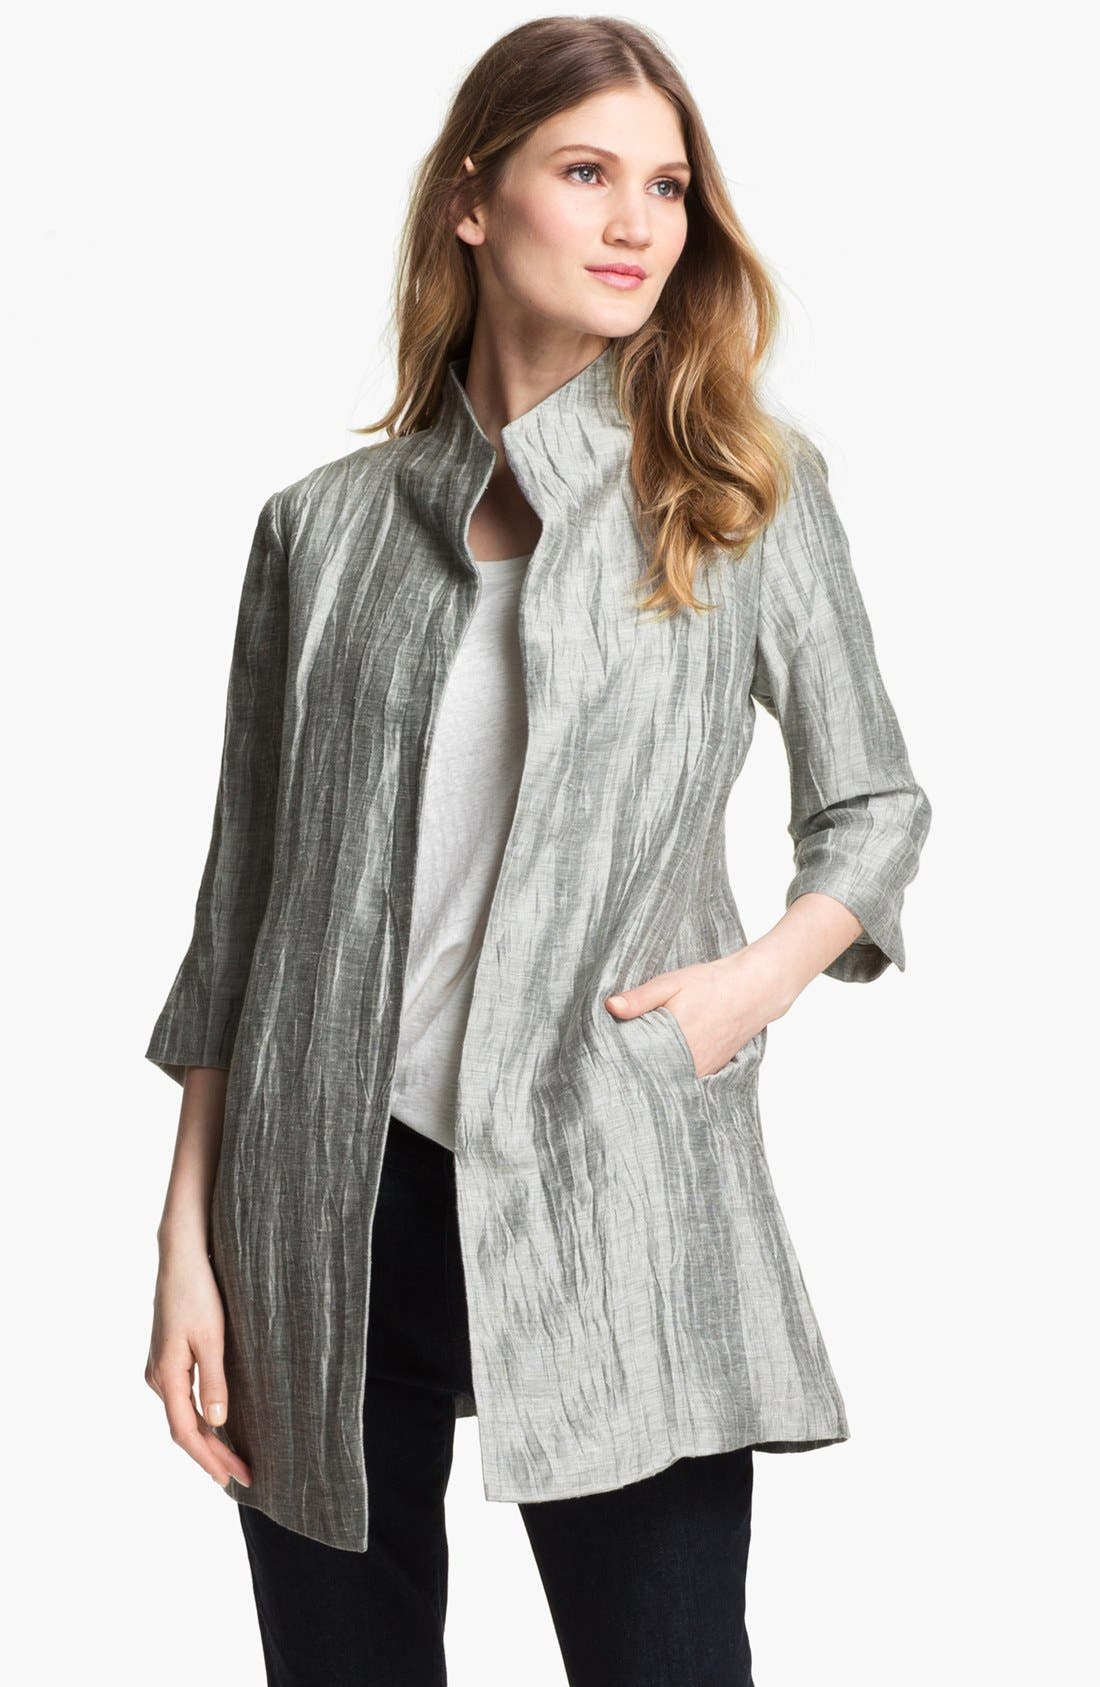 Alternate Image 1 Selected - Eileen Fisher Crinkled Linen Jacket (Petite)